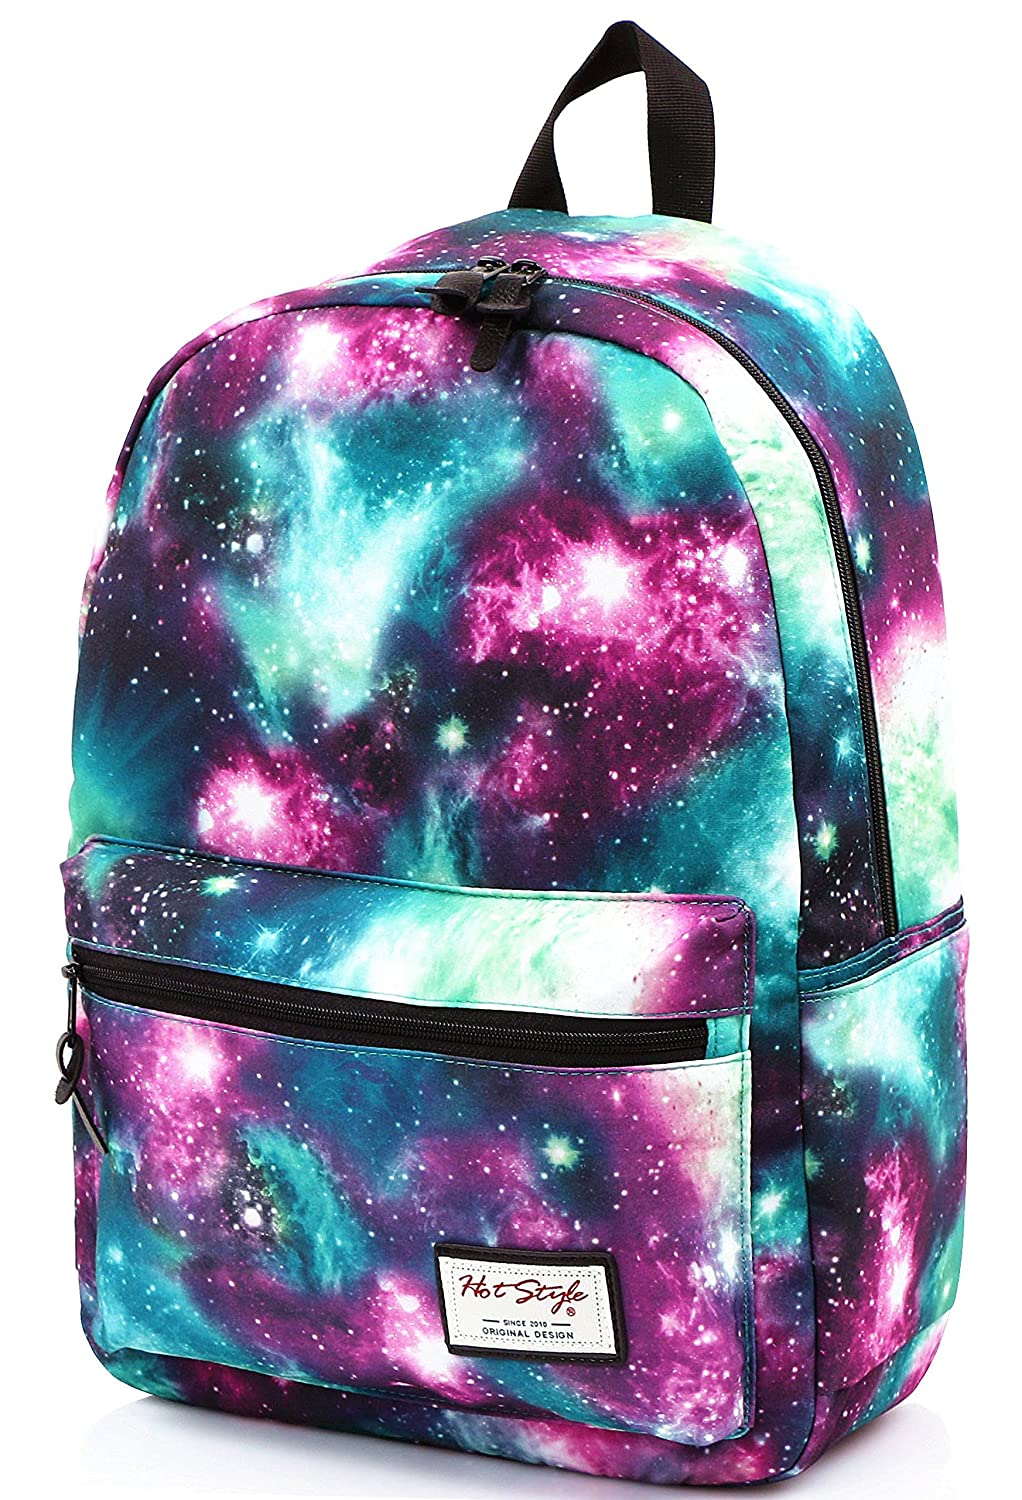 Amazon.com: HotStyle Fashion Printed TrendyMax Galaxy Pattern ...